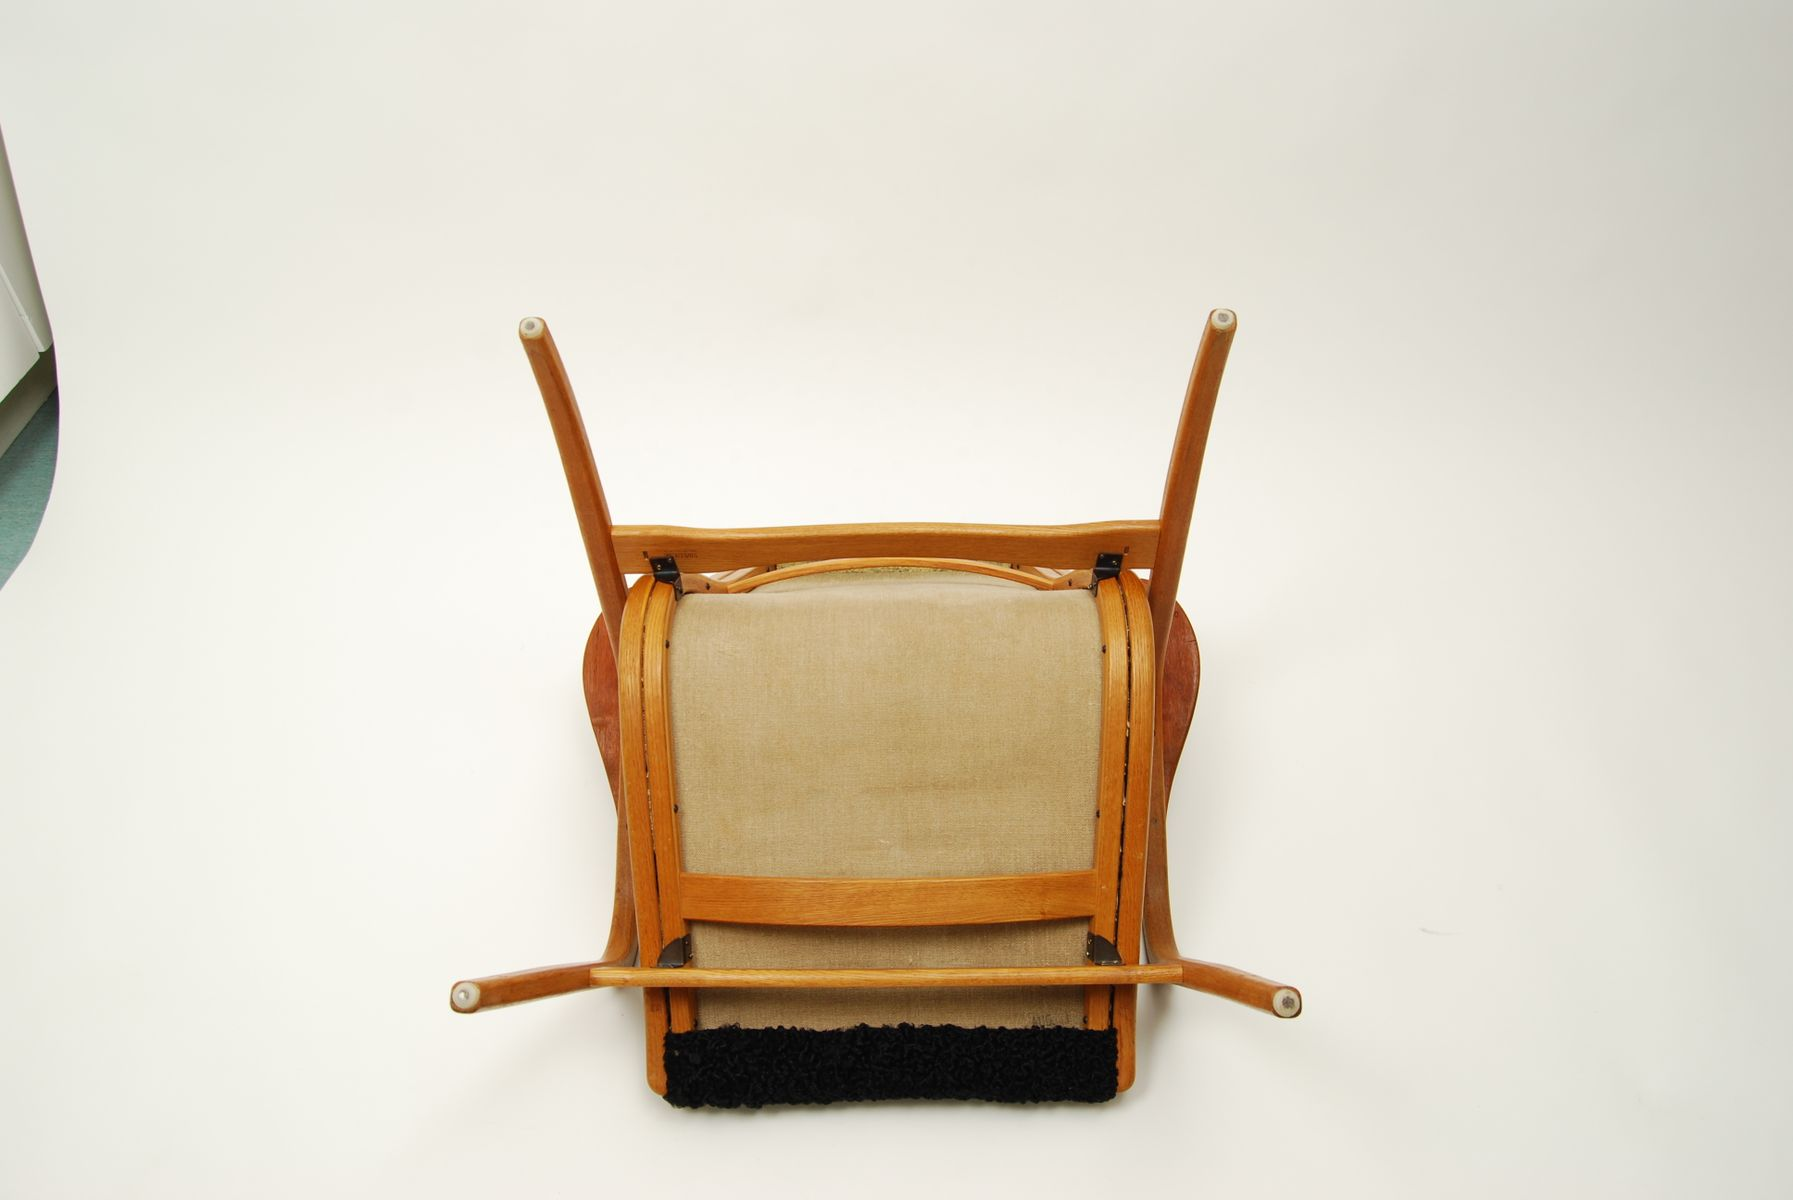 Laminett Easy Chair by Yngve Ekström for Swedese, 1950s for sale at Pamono